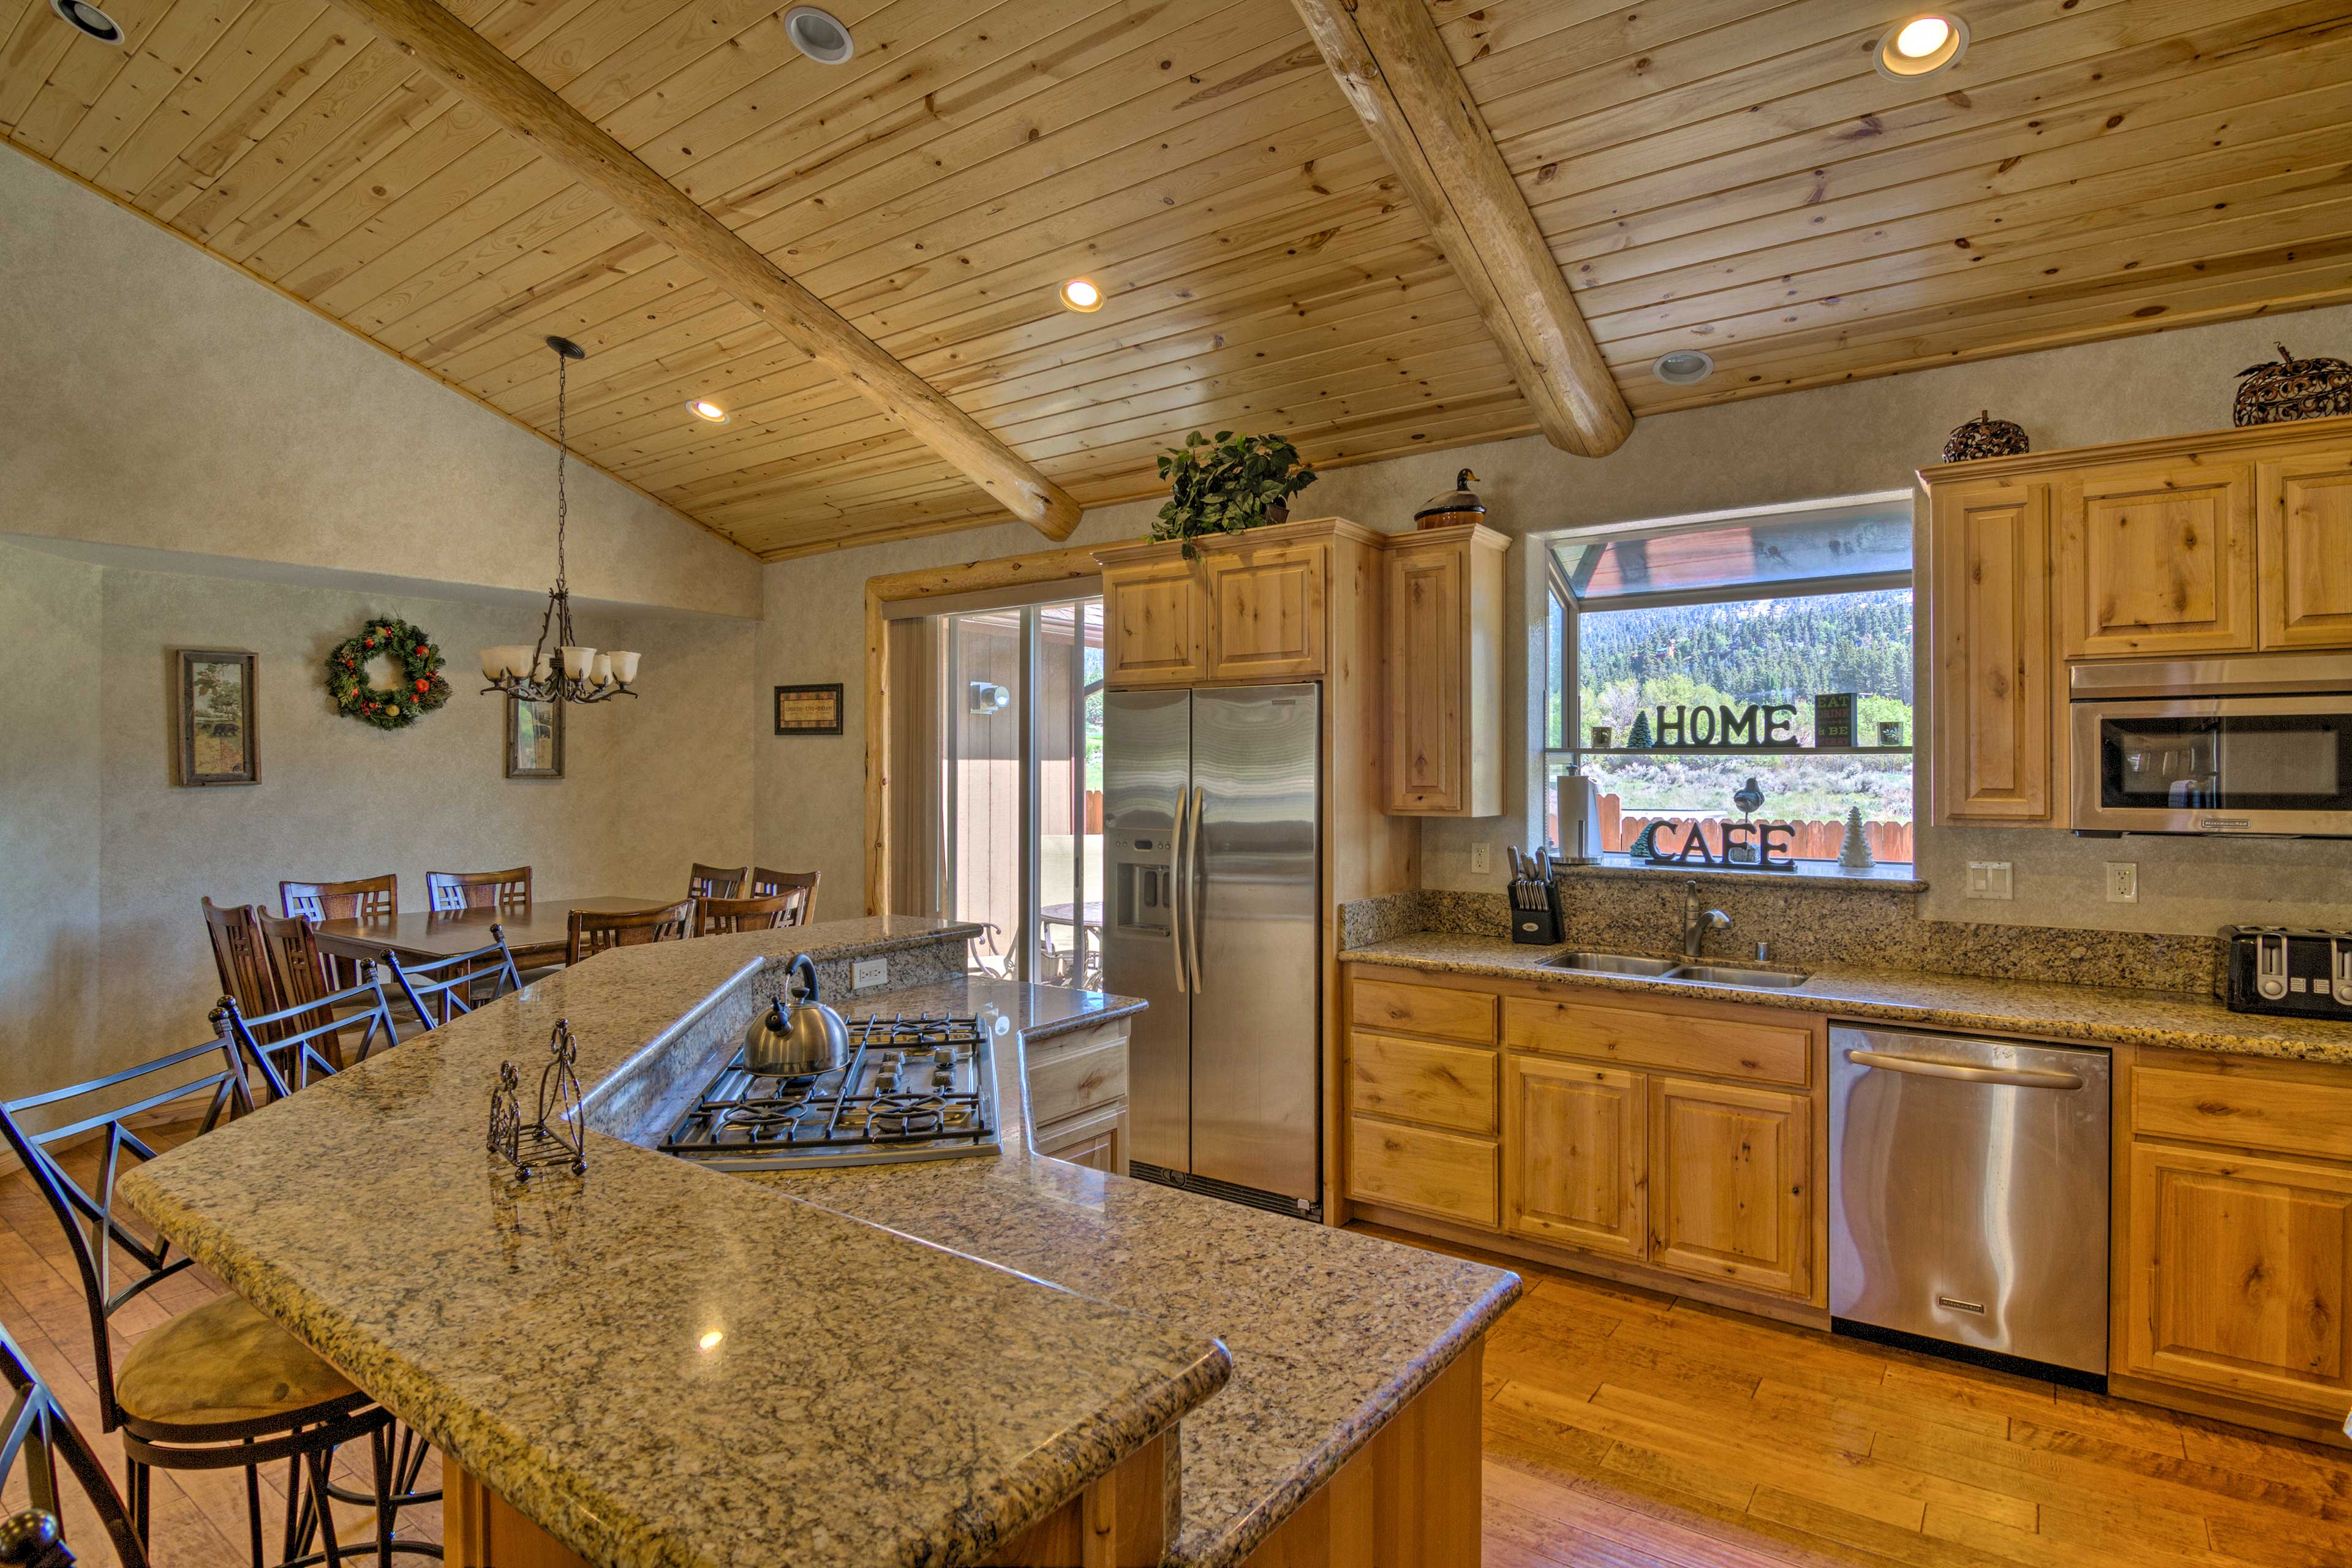 Prepare tasty home-cooked meals in the fully equipped kitchen.